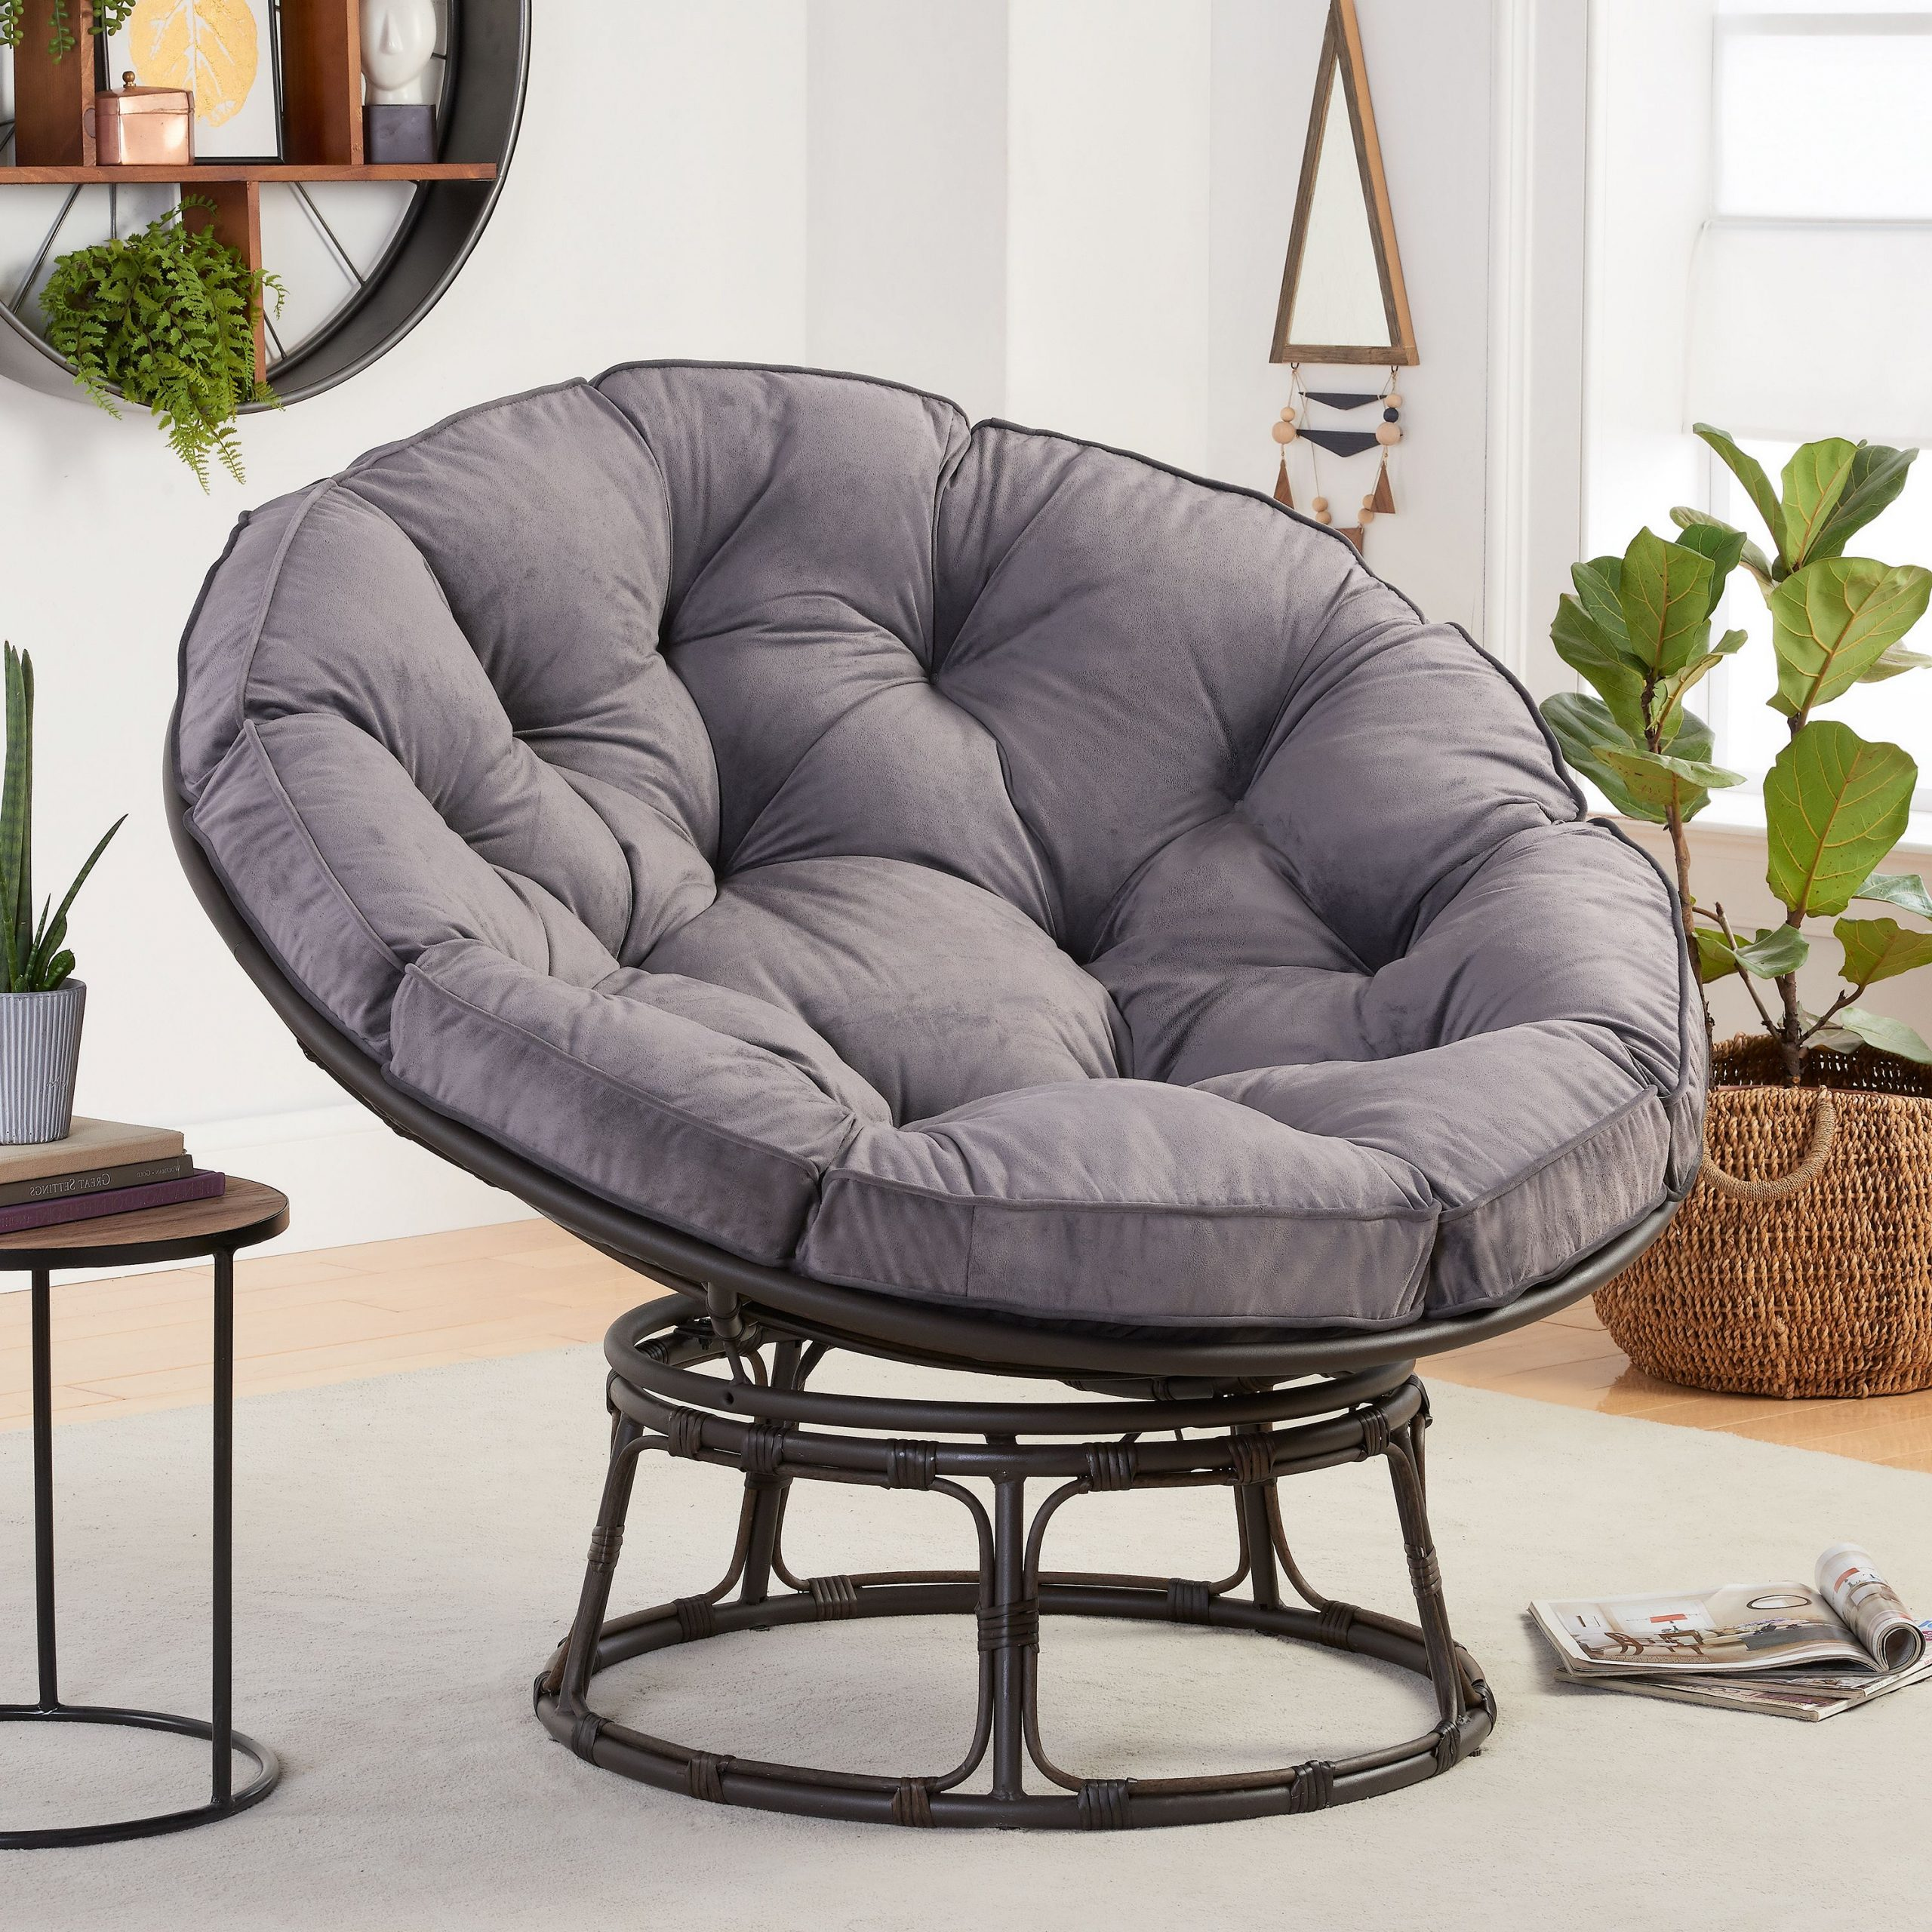 Better Homes & Gardens Papasan Chair With Fabric Cushion, Charcoal Gray – Walmart Intended For Trendy Decker Papasan Chairs (View 4 of 20)